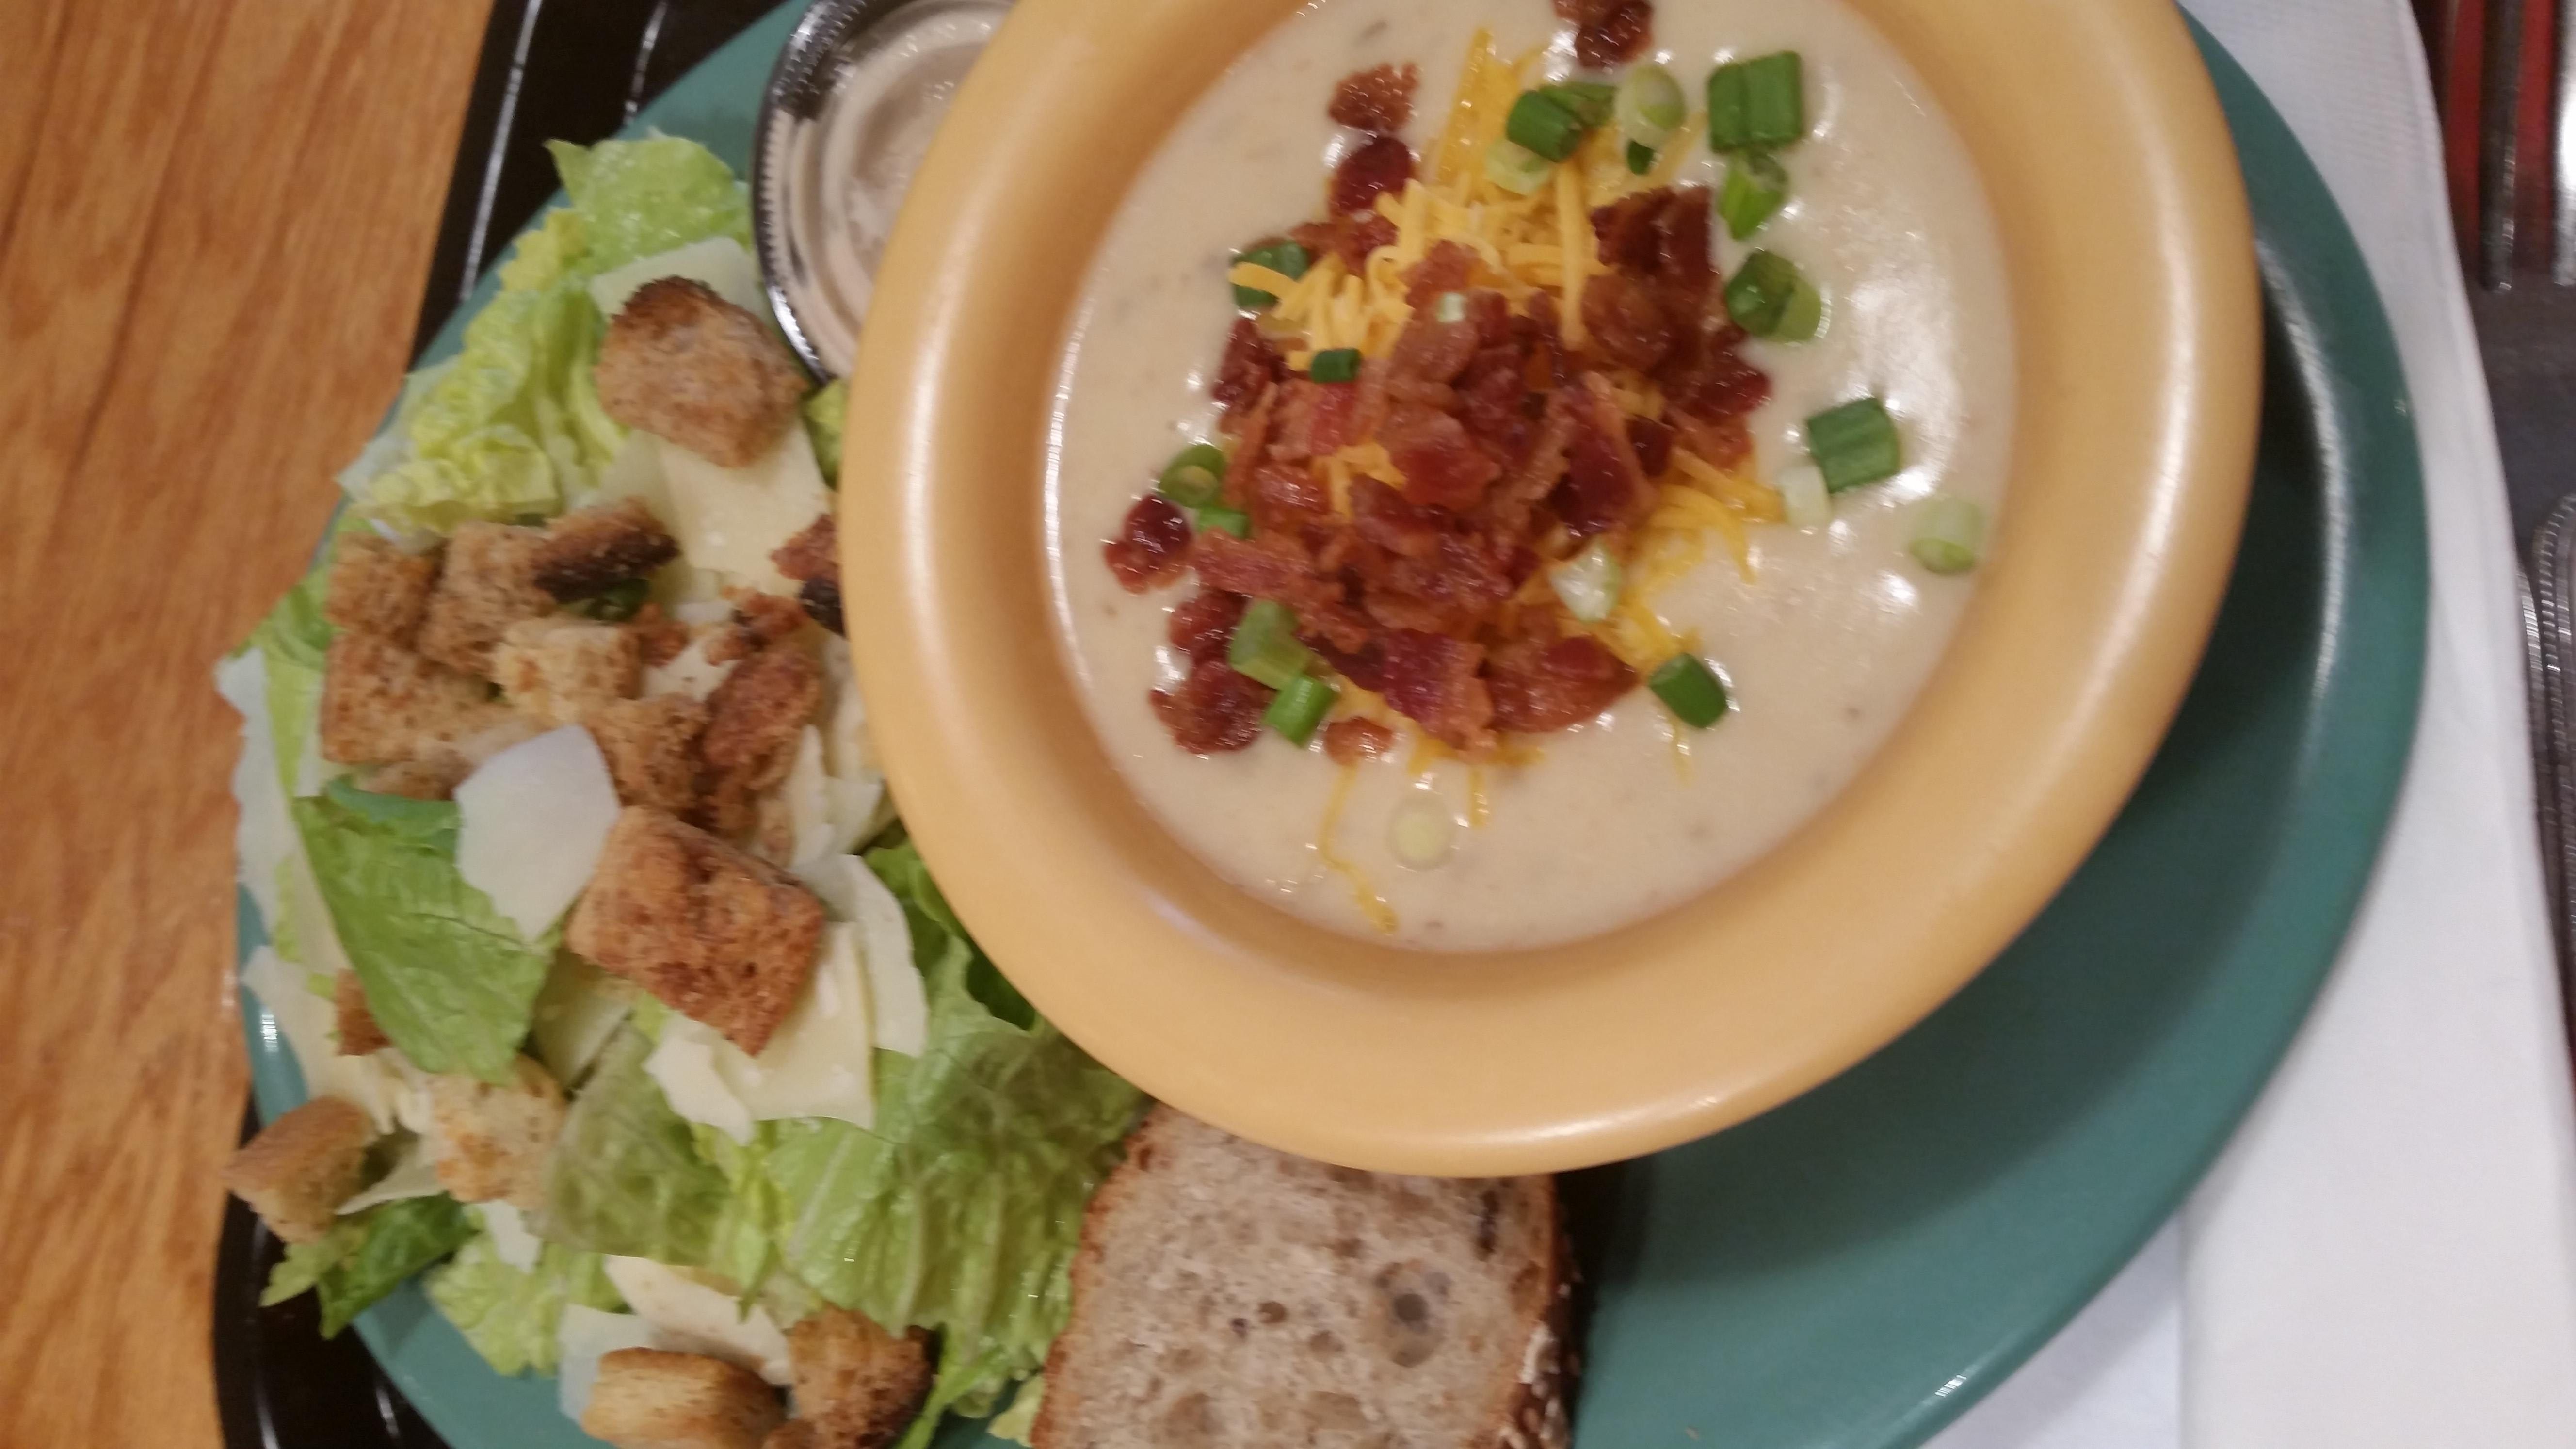 Baked Potato Soup and Caesar Salad Combo at South Street Creamery Cafe